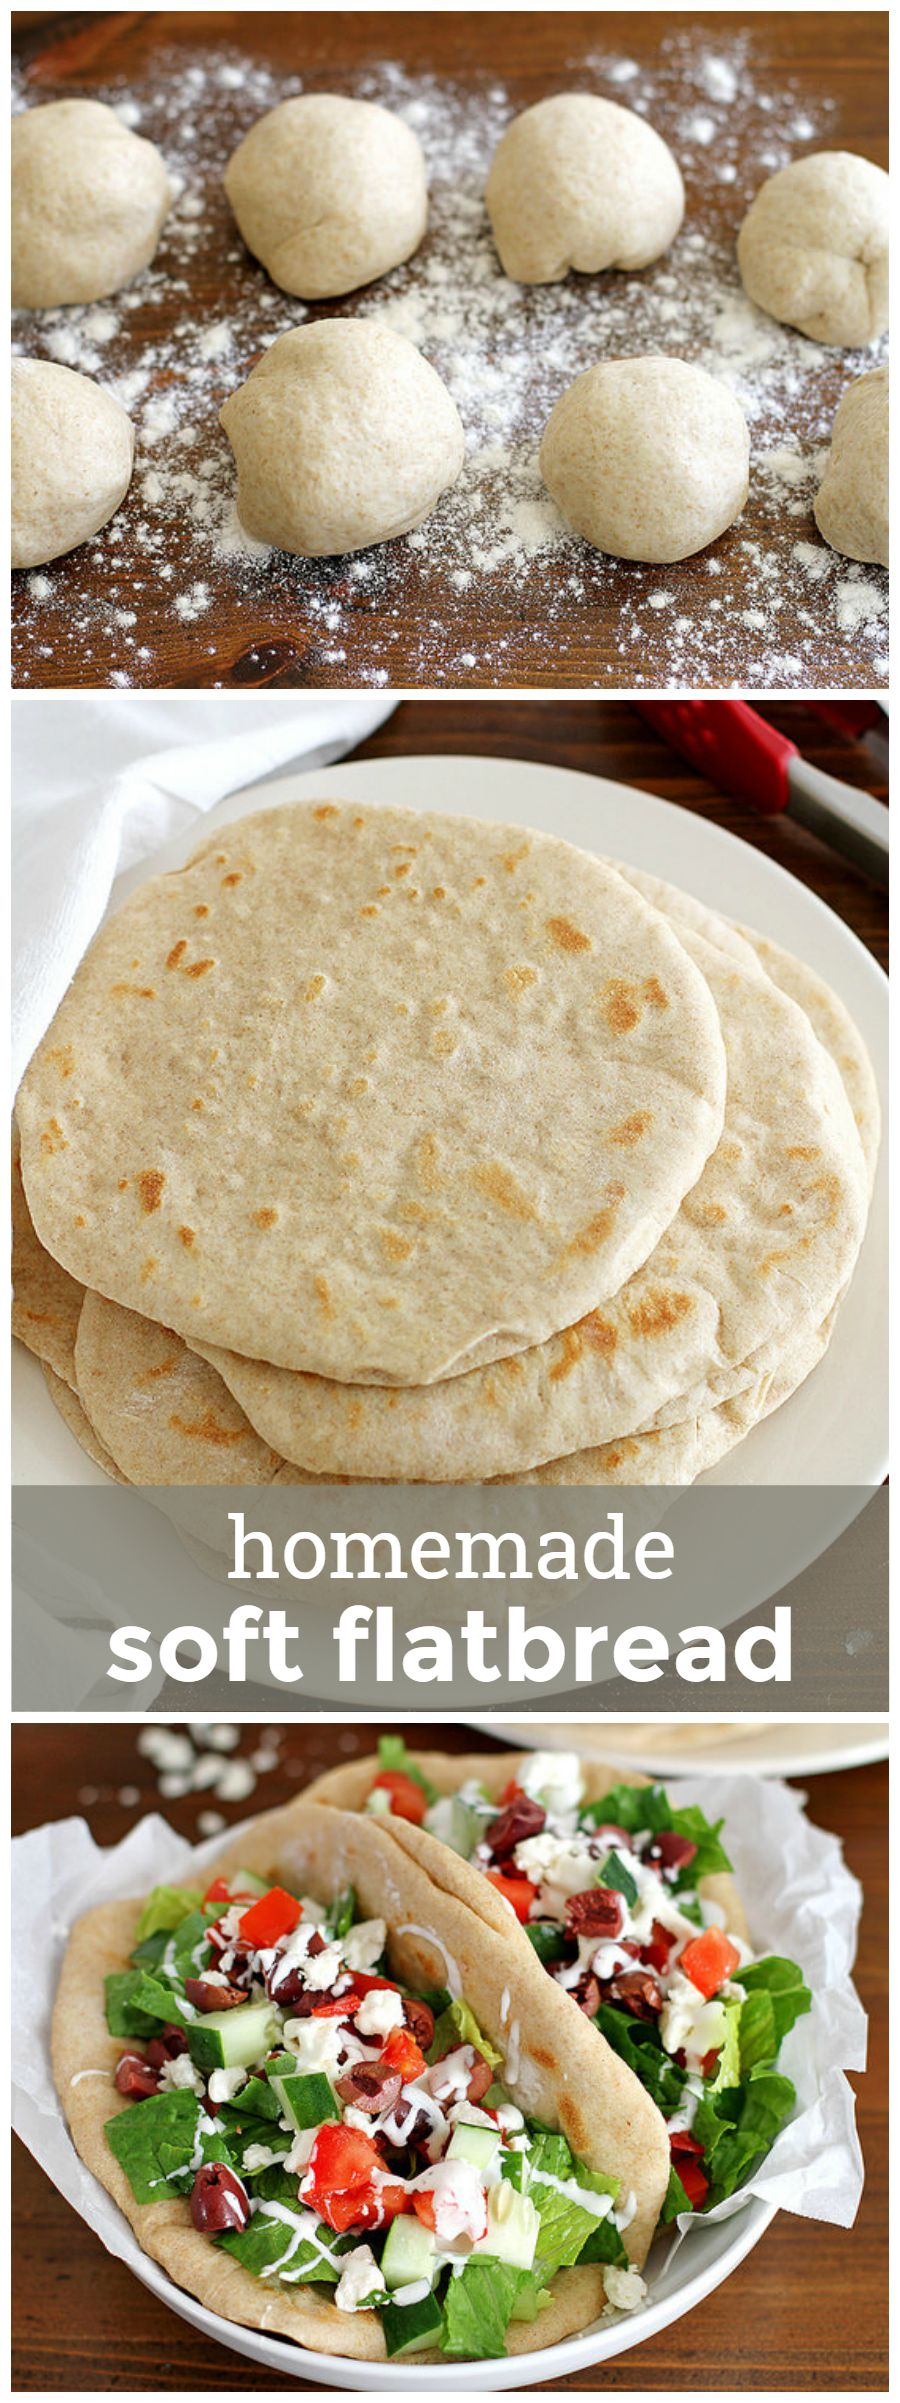 Homemade Soft Flatbread -- perfect for pita sandwiches, pizzas or to scoop your favorite dip! girlversusdough.com @girlversusdough #girlversusdough #pitabread #easybreadrecipe